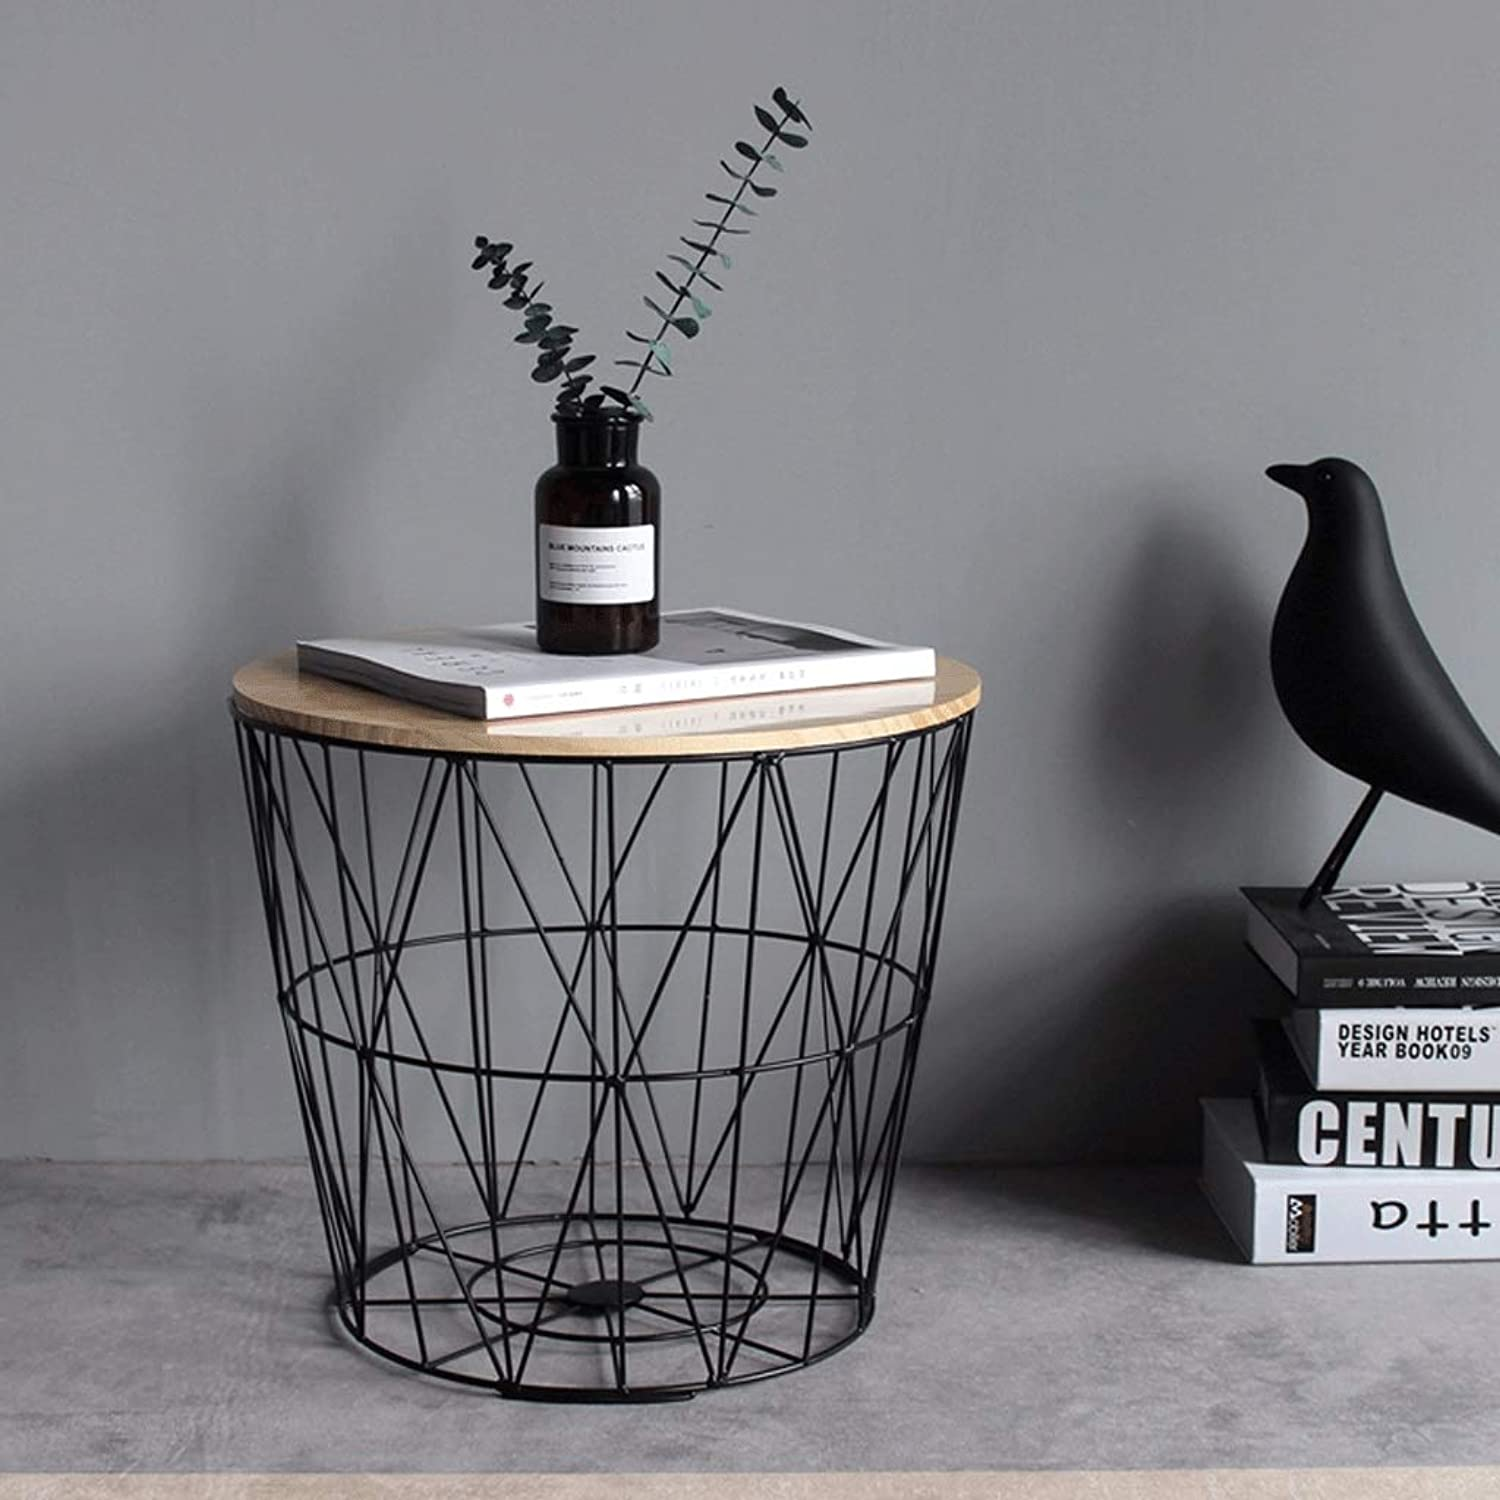 Nordic Wrought Iron Side Table Small Coffee Table Solid Wood Small Round Table Bedside Table Corner Multi-Function Storage Basket Basket Storage Basket A+ (color   Black, Size   35CM)